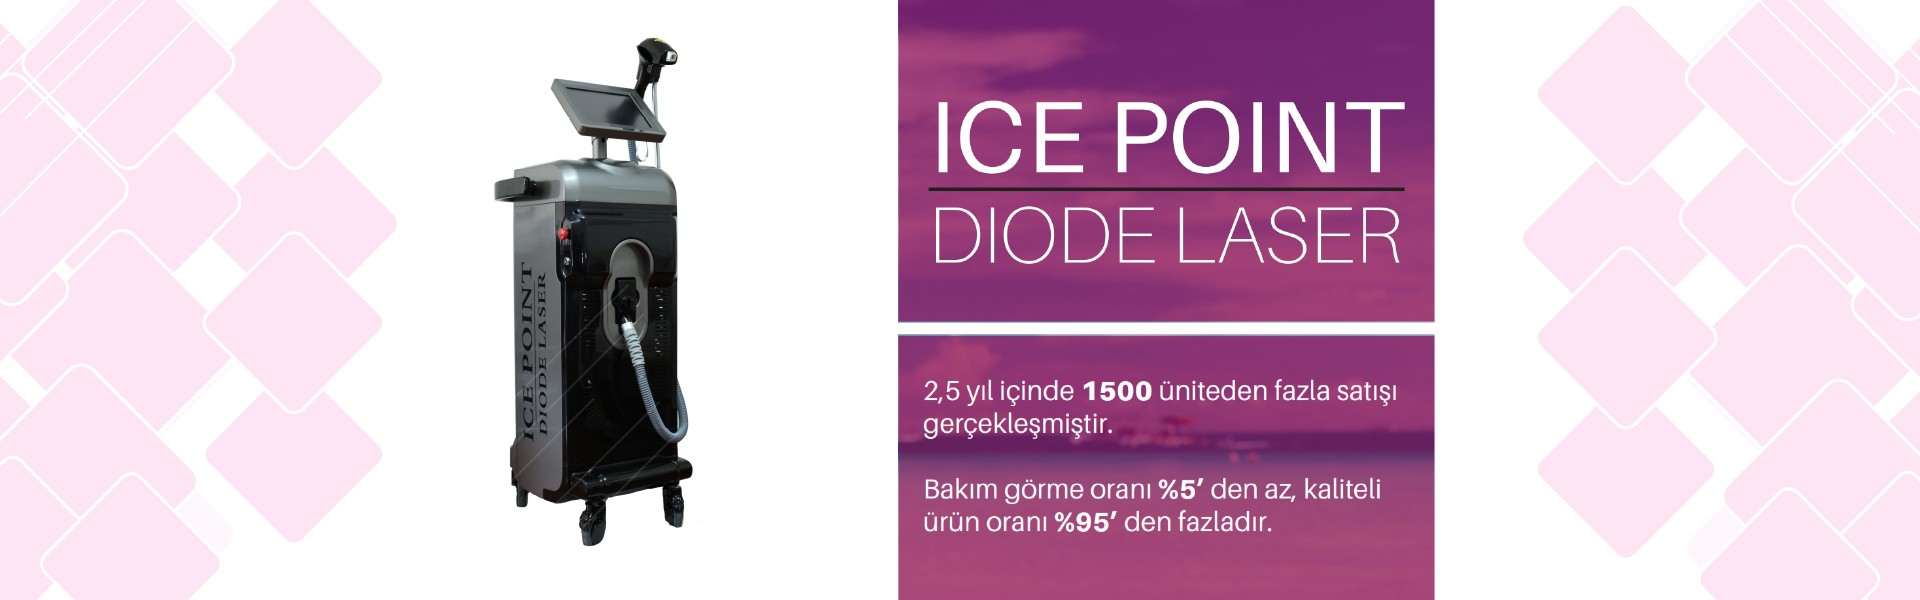 Icepoint Diode Lazer